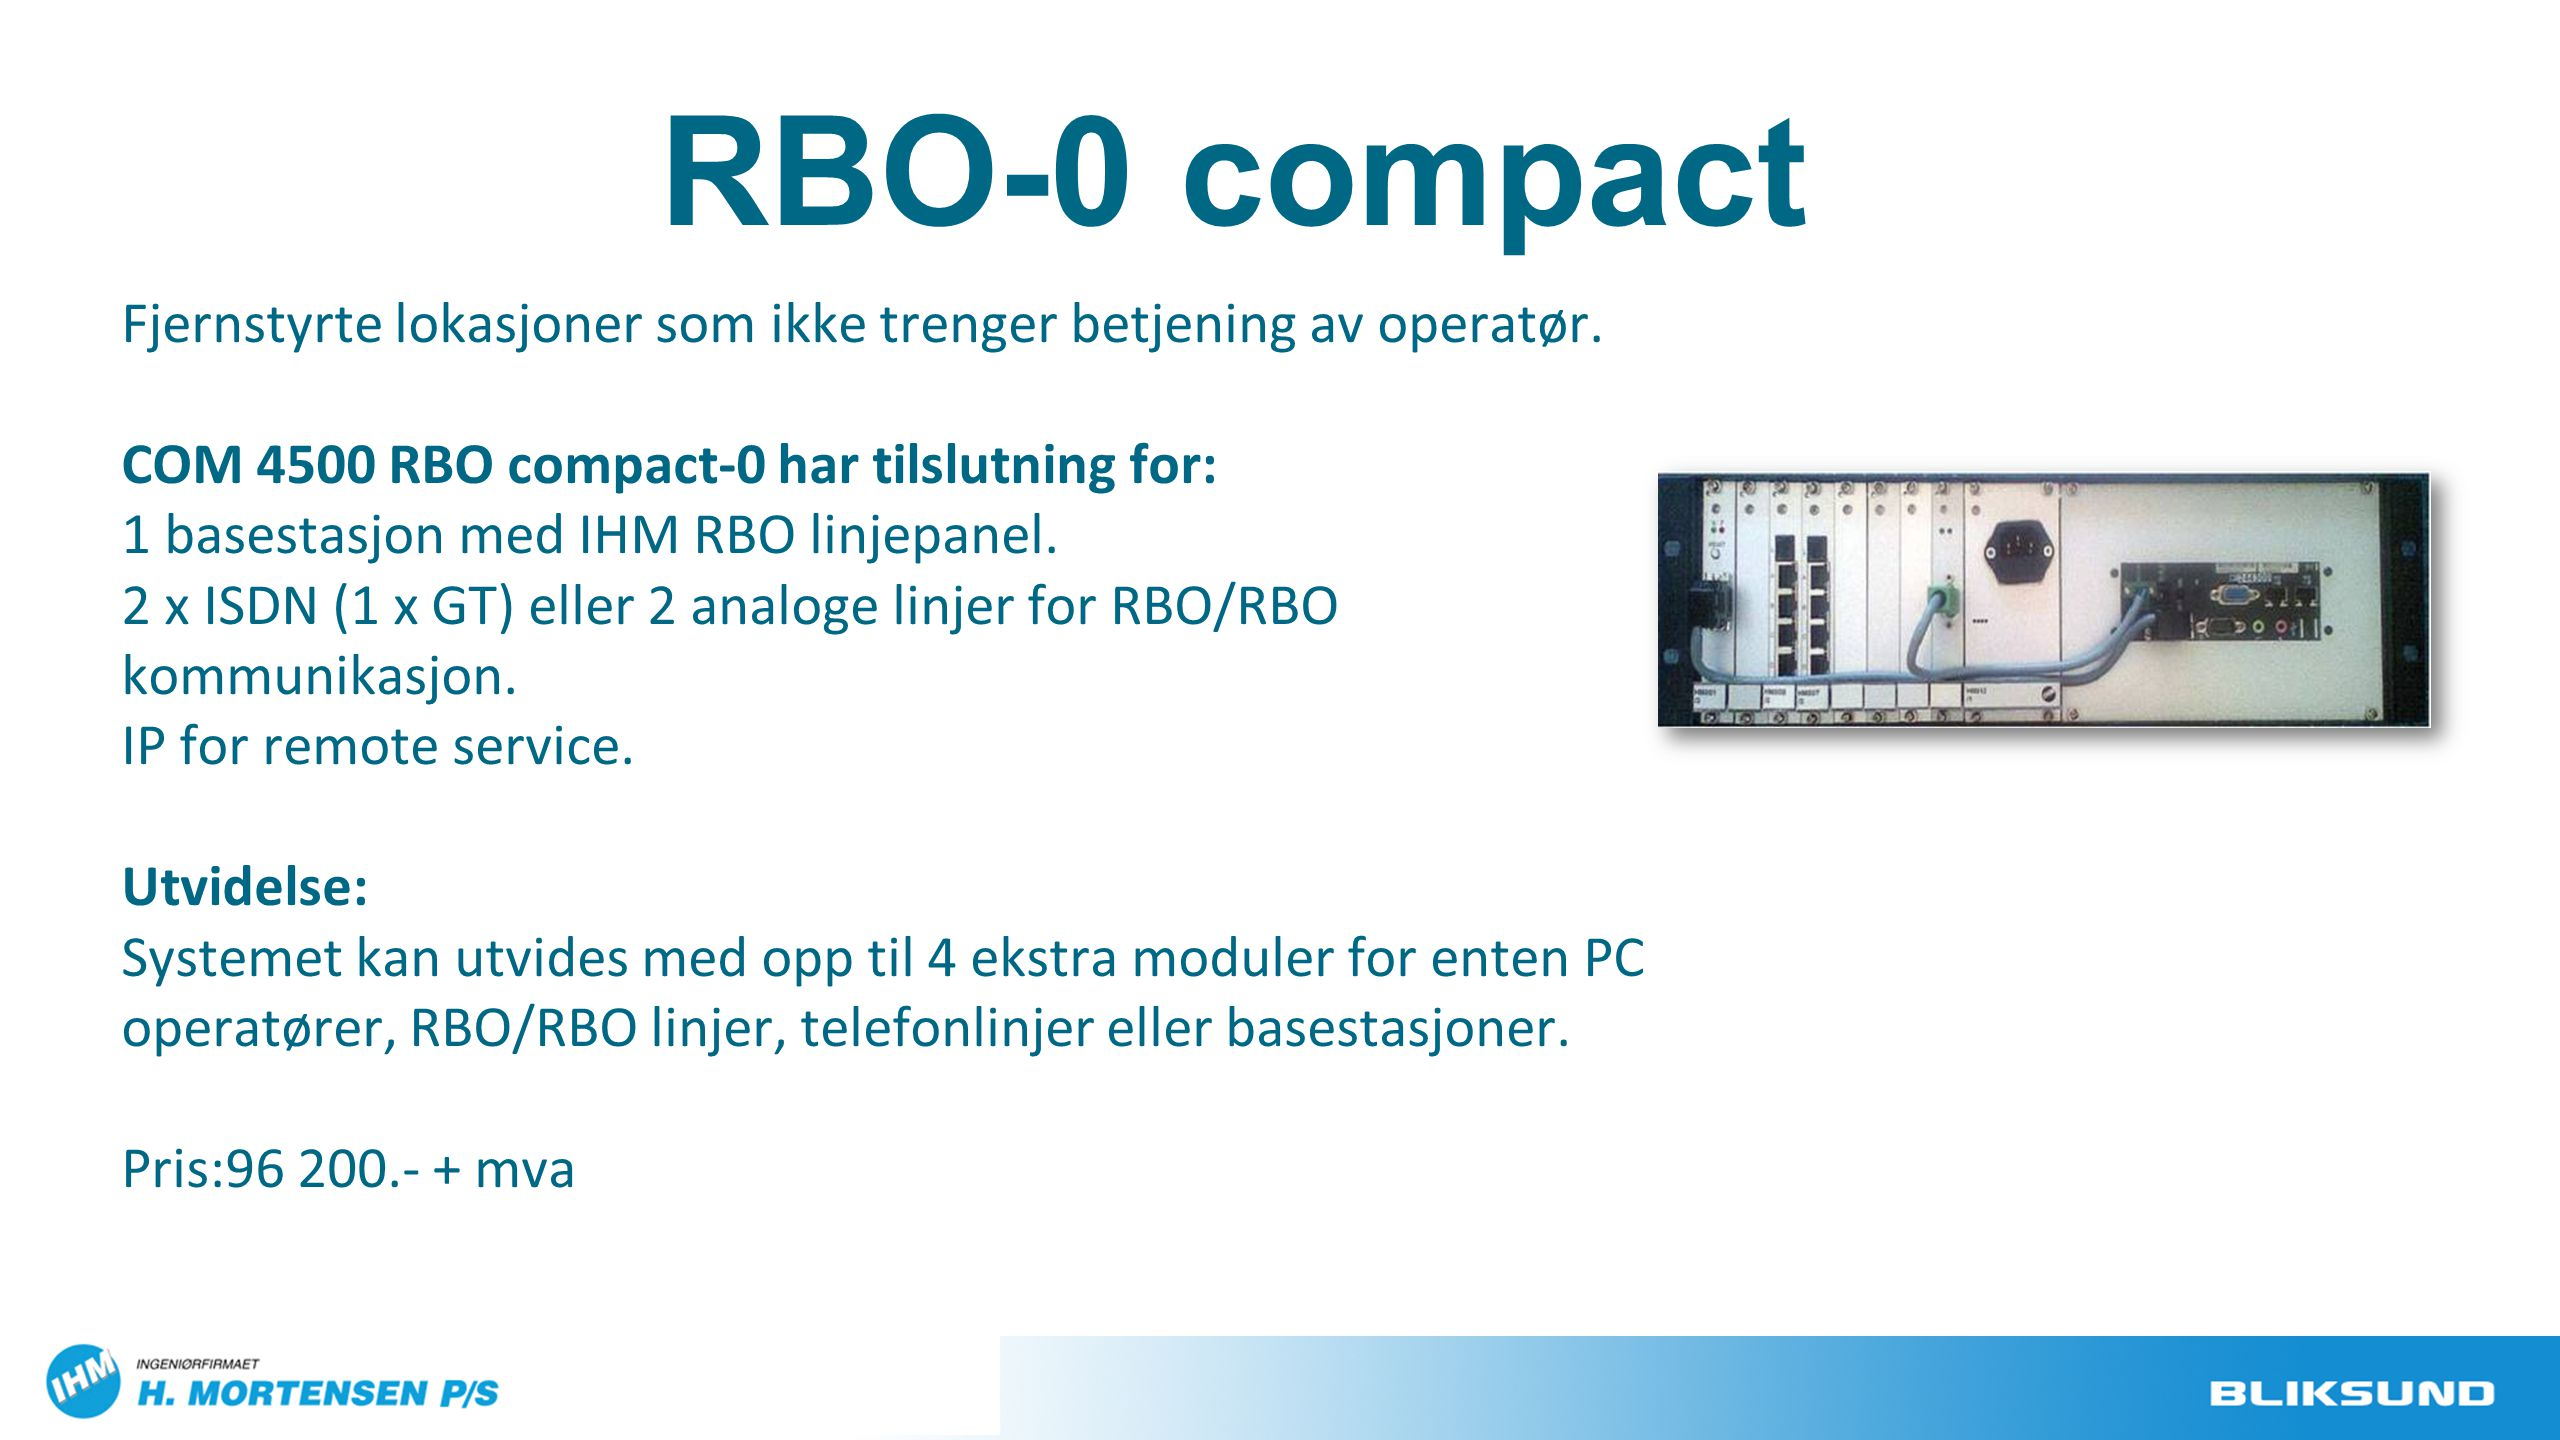 RBO-0 compact